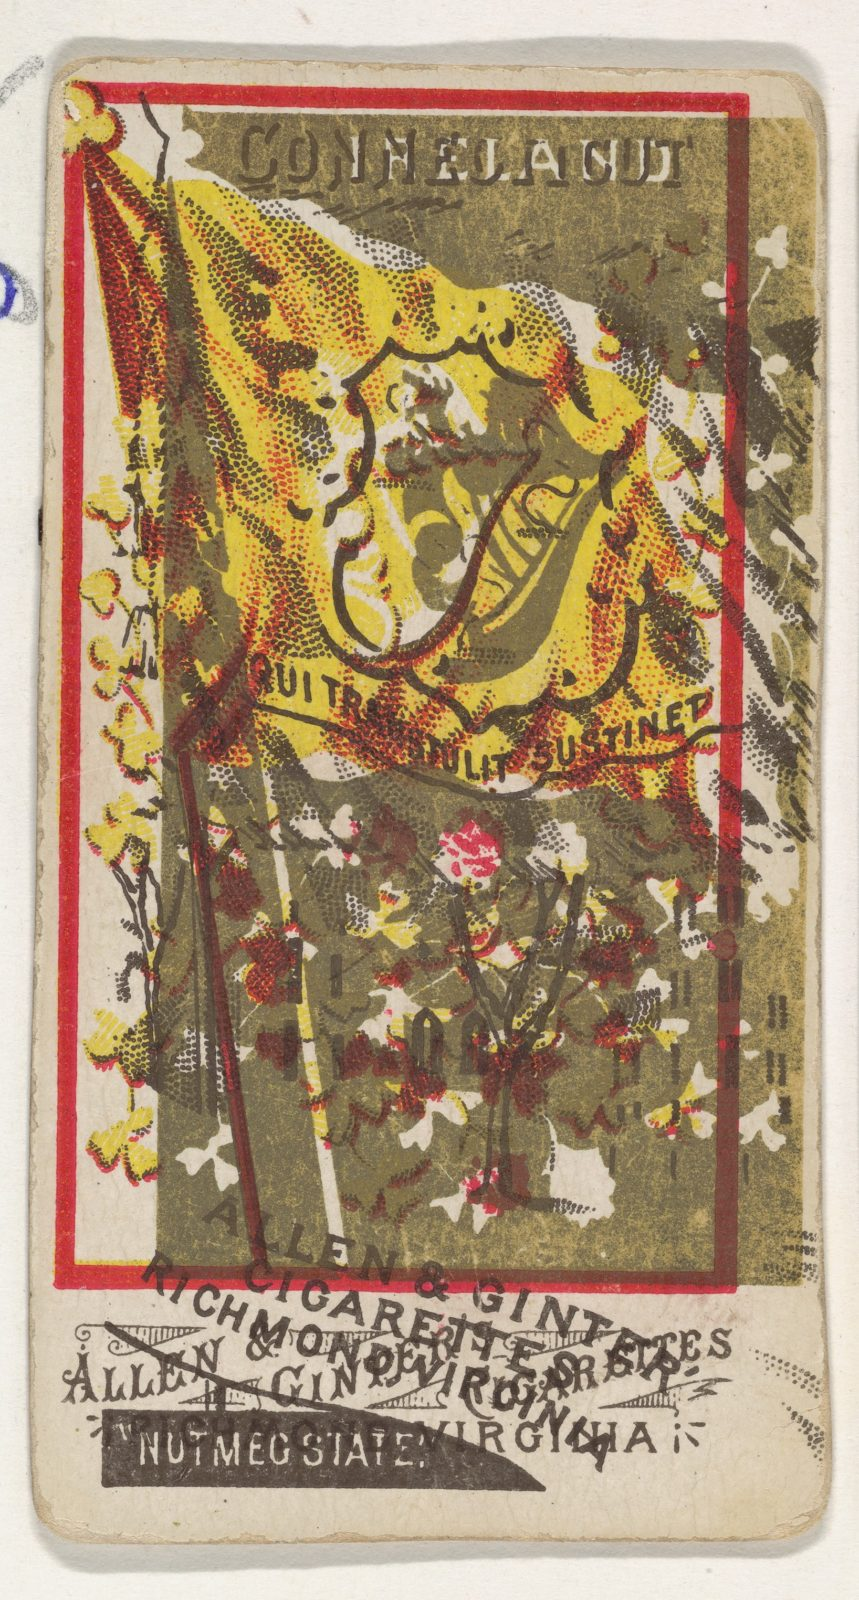 Connecticut and Ireland (double-printed card), from Flags of All Nations, Series 1 (N9) for Allen & Ginter Cigarettes Brands